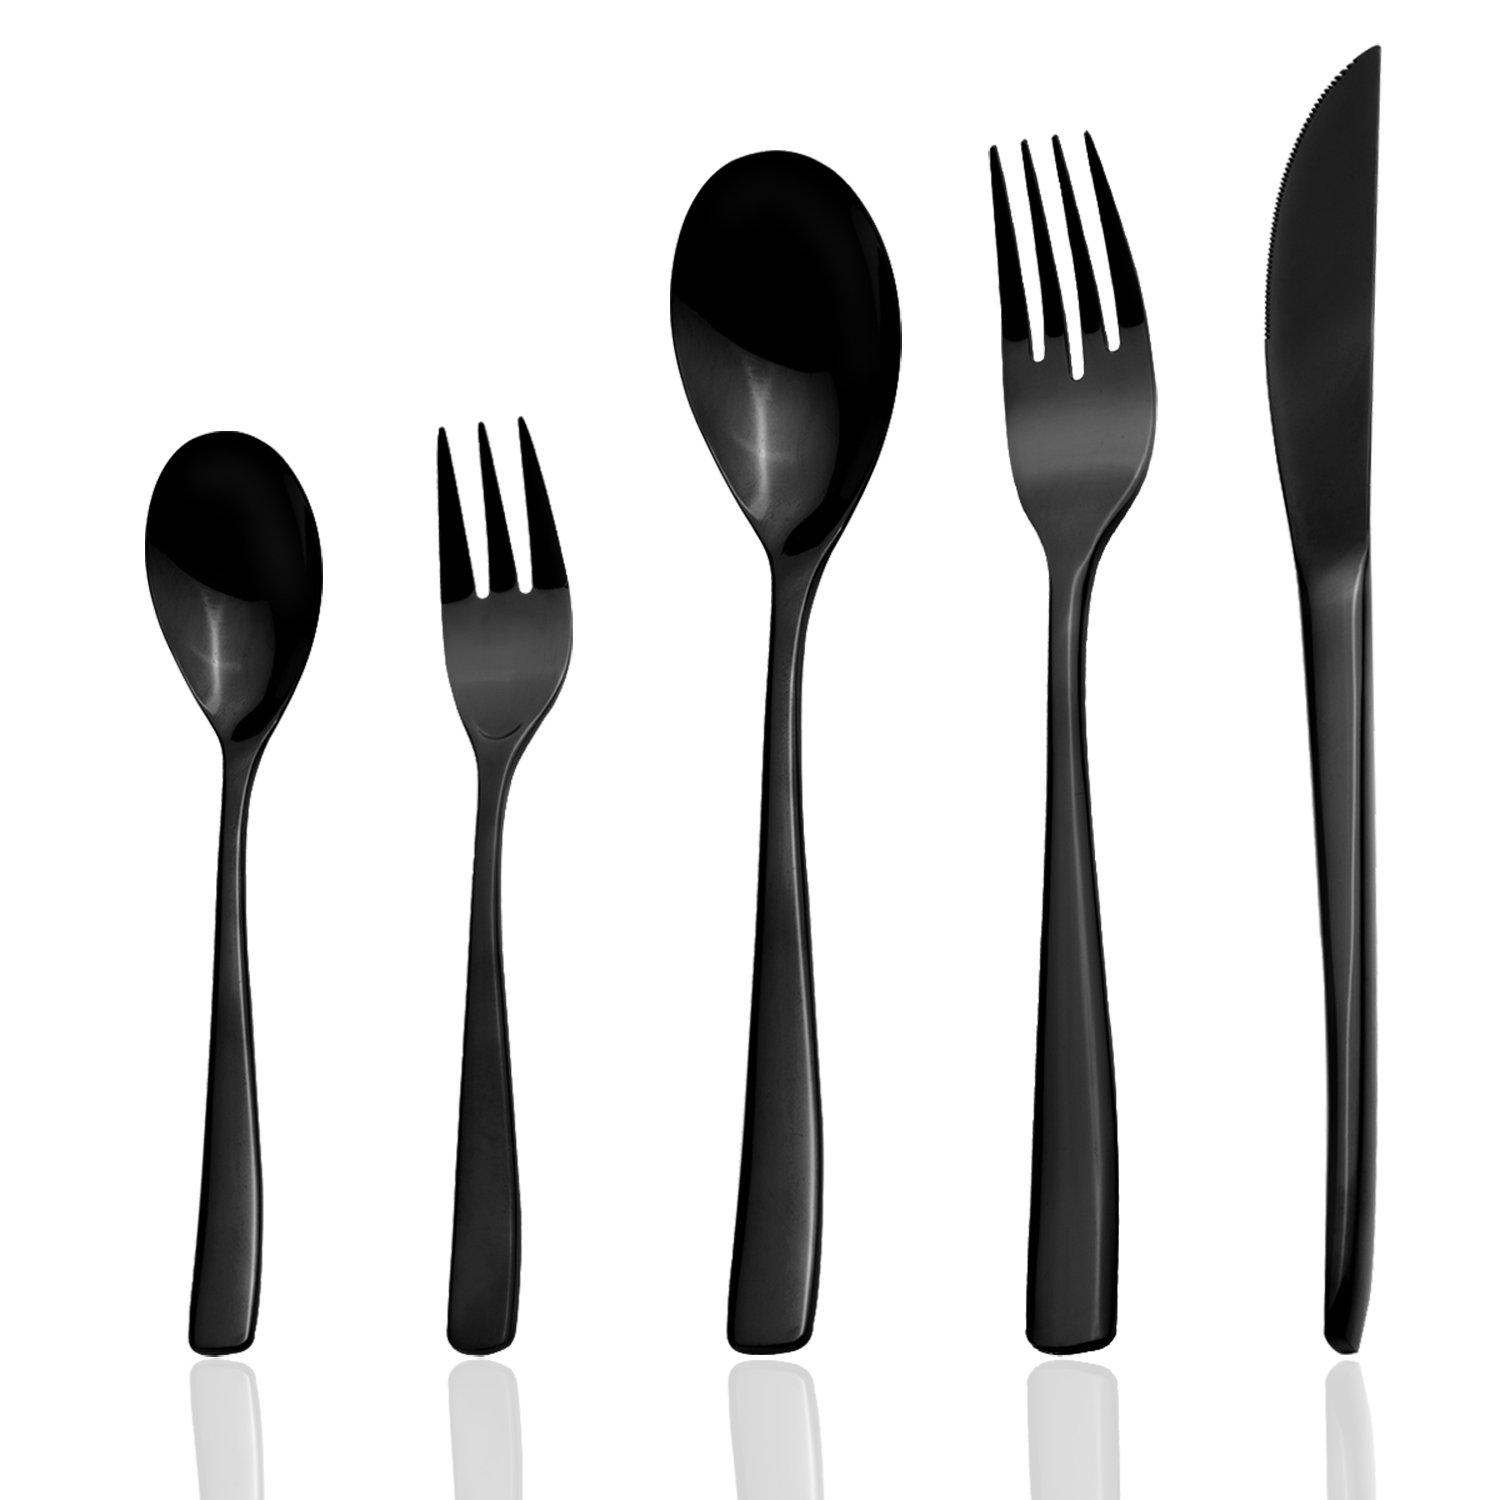 Flatware Set, 20-Piece Silverware Set, Mazmayi Stainless Steel Home Kitchen Hotel Restaurant Tableware Cutlery Set, Service for 4, Mirror Finished, Dishwasher Safe (Mirror Finish Black)